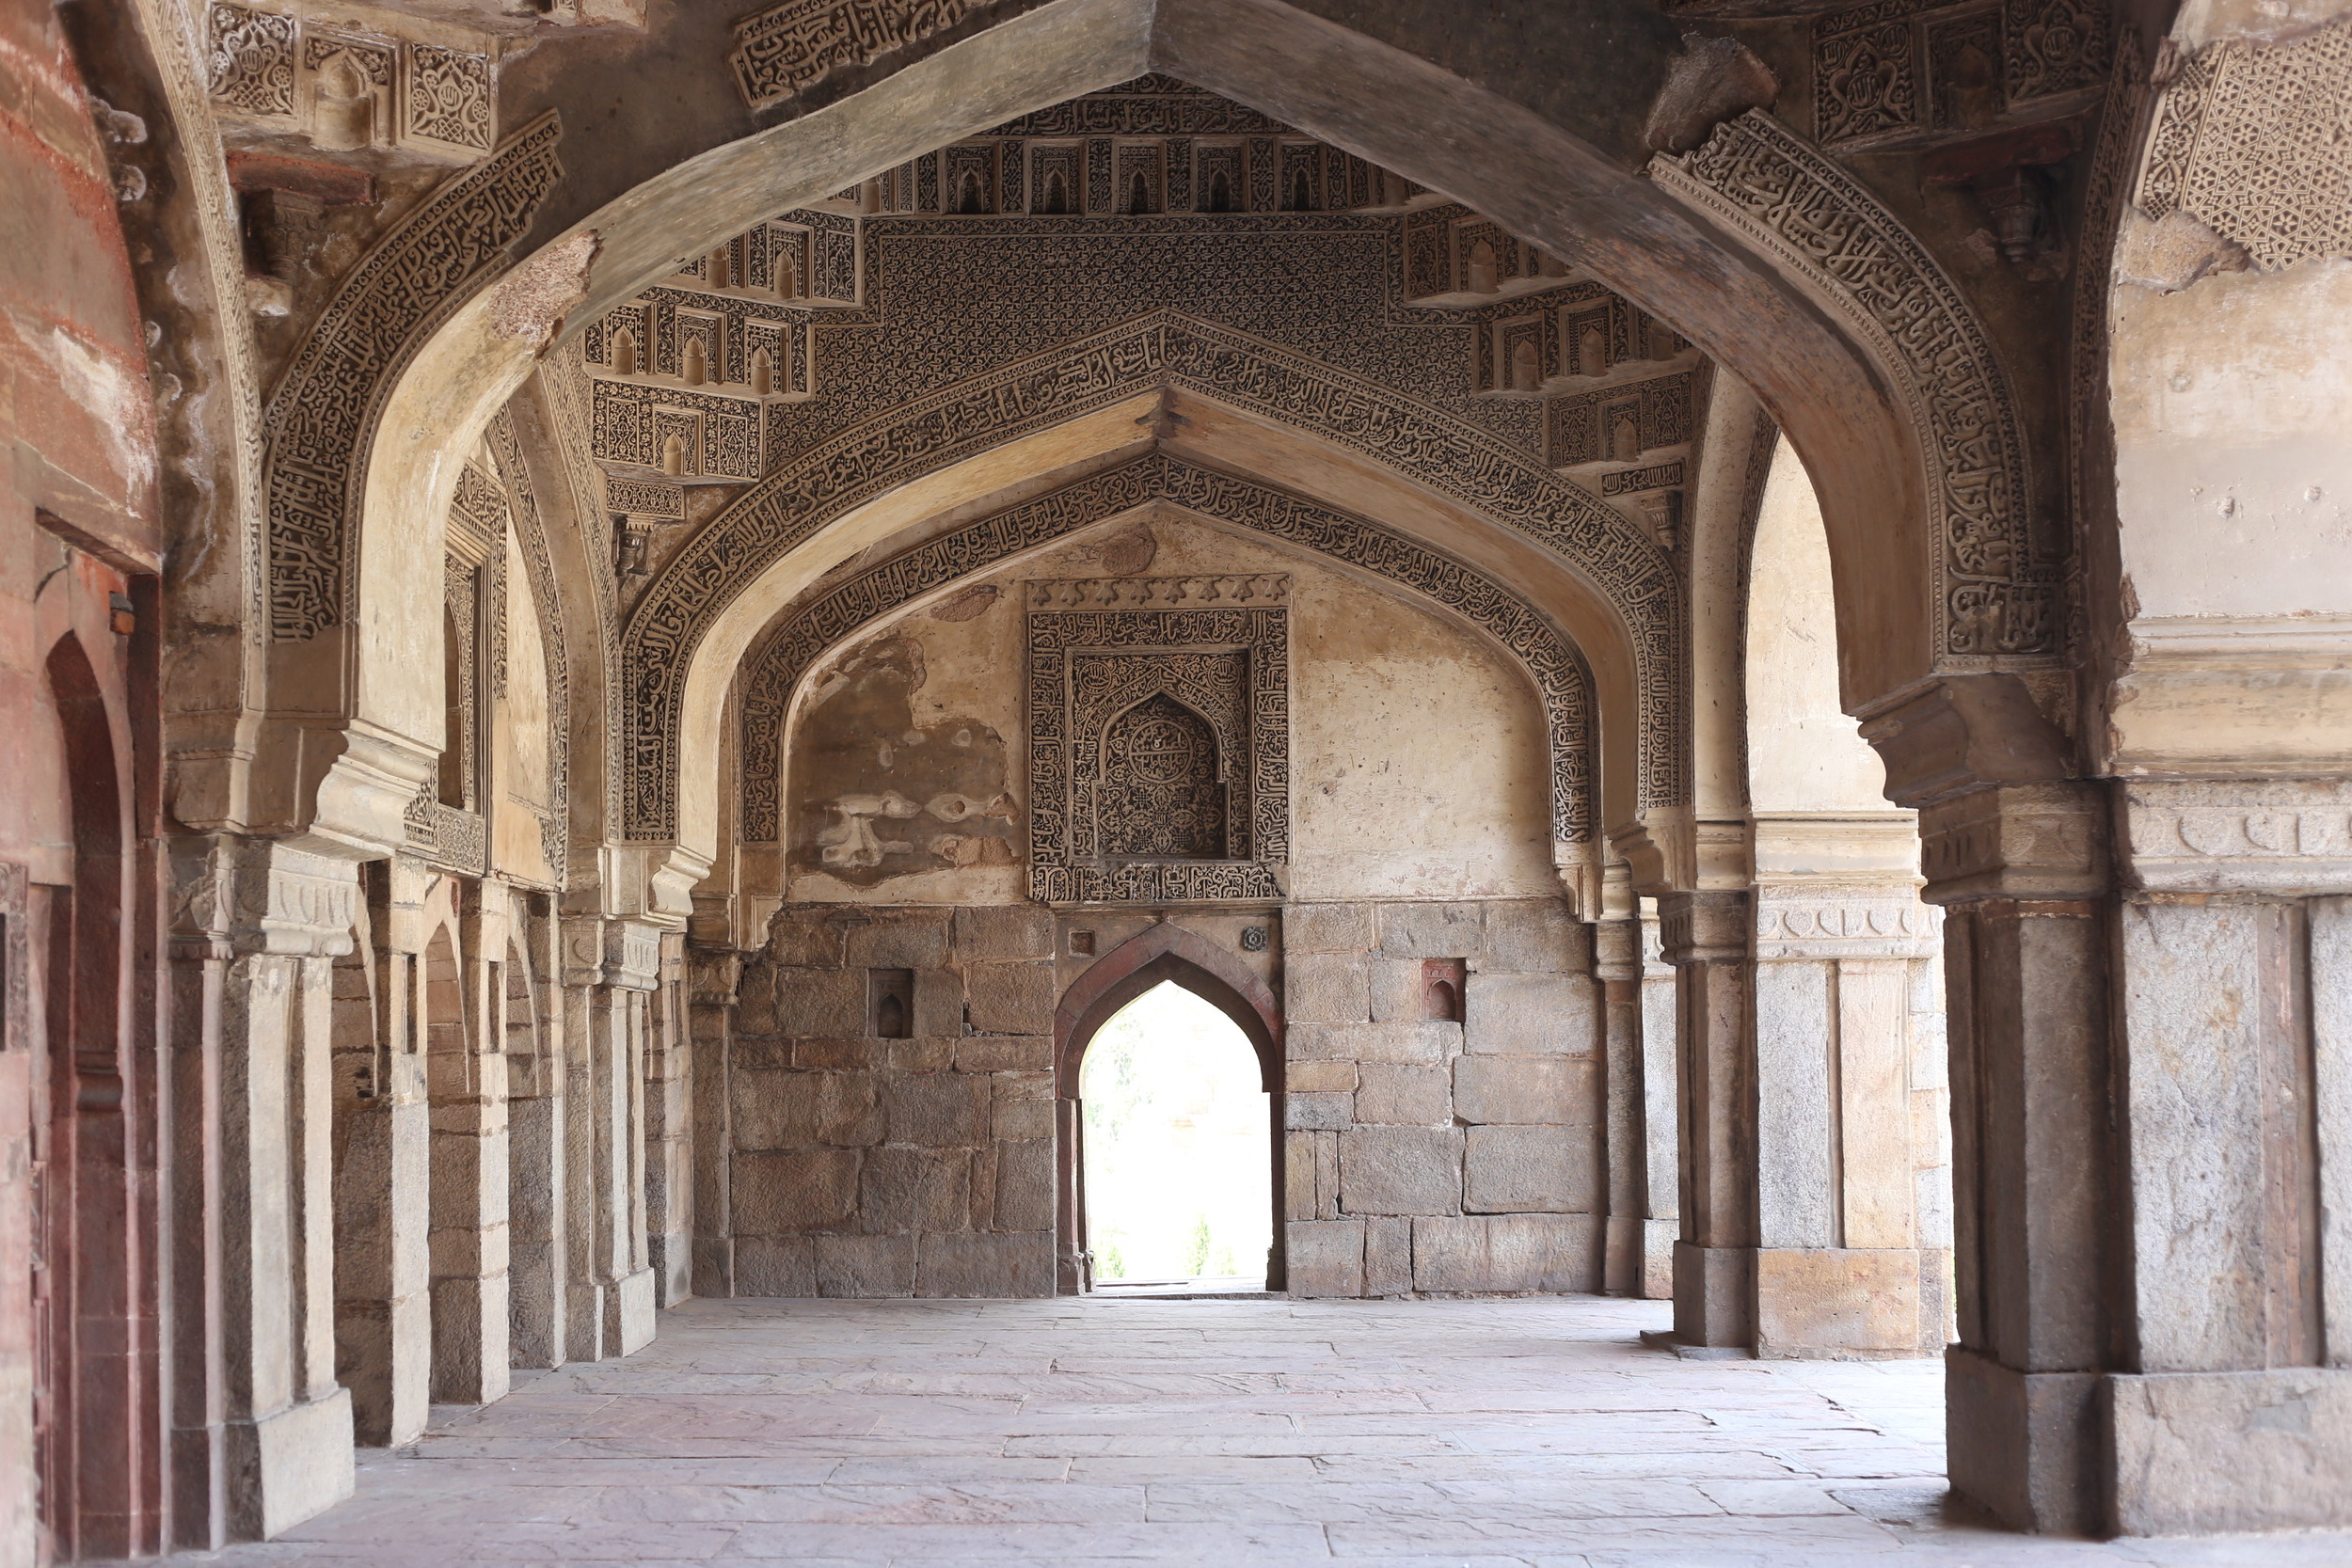 Lodhi Gardens Architecture - New Delhi, India